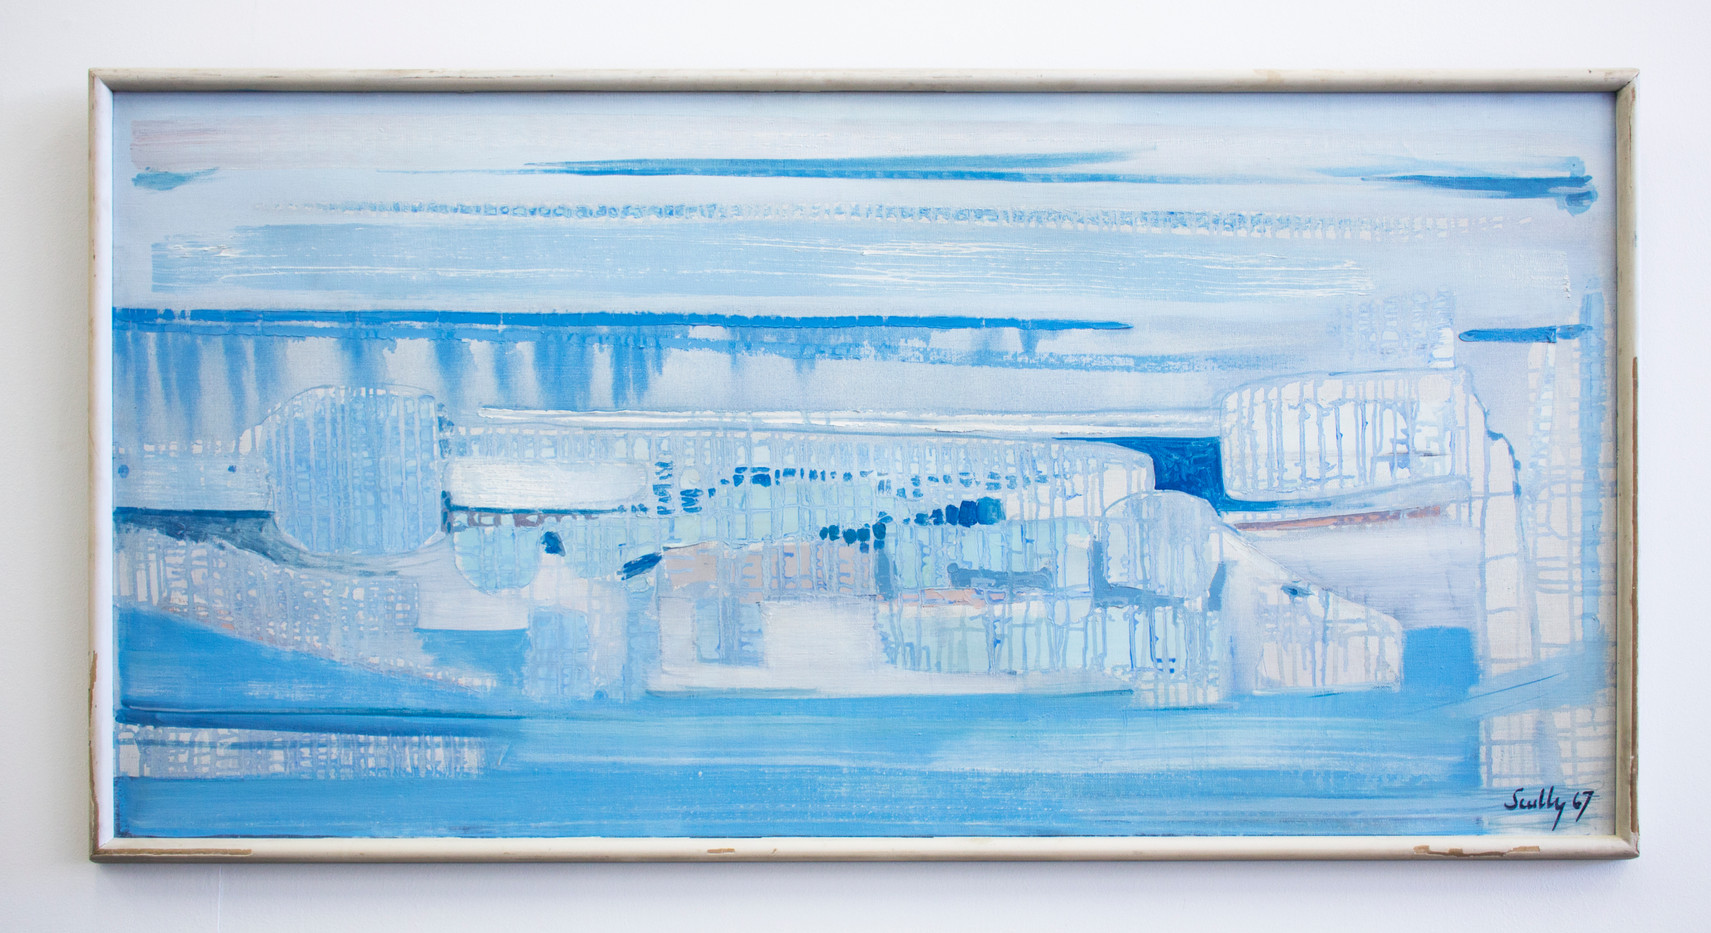 Larry Scully | Durban No. 11 - Blue Reef | 1967 | Oil on Canvas | 61 x 122 cm